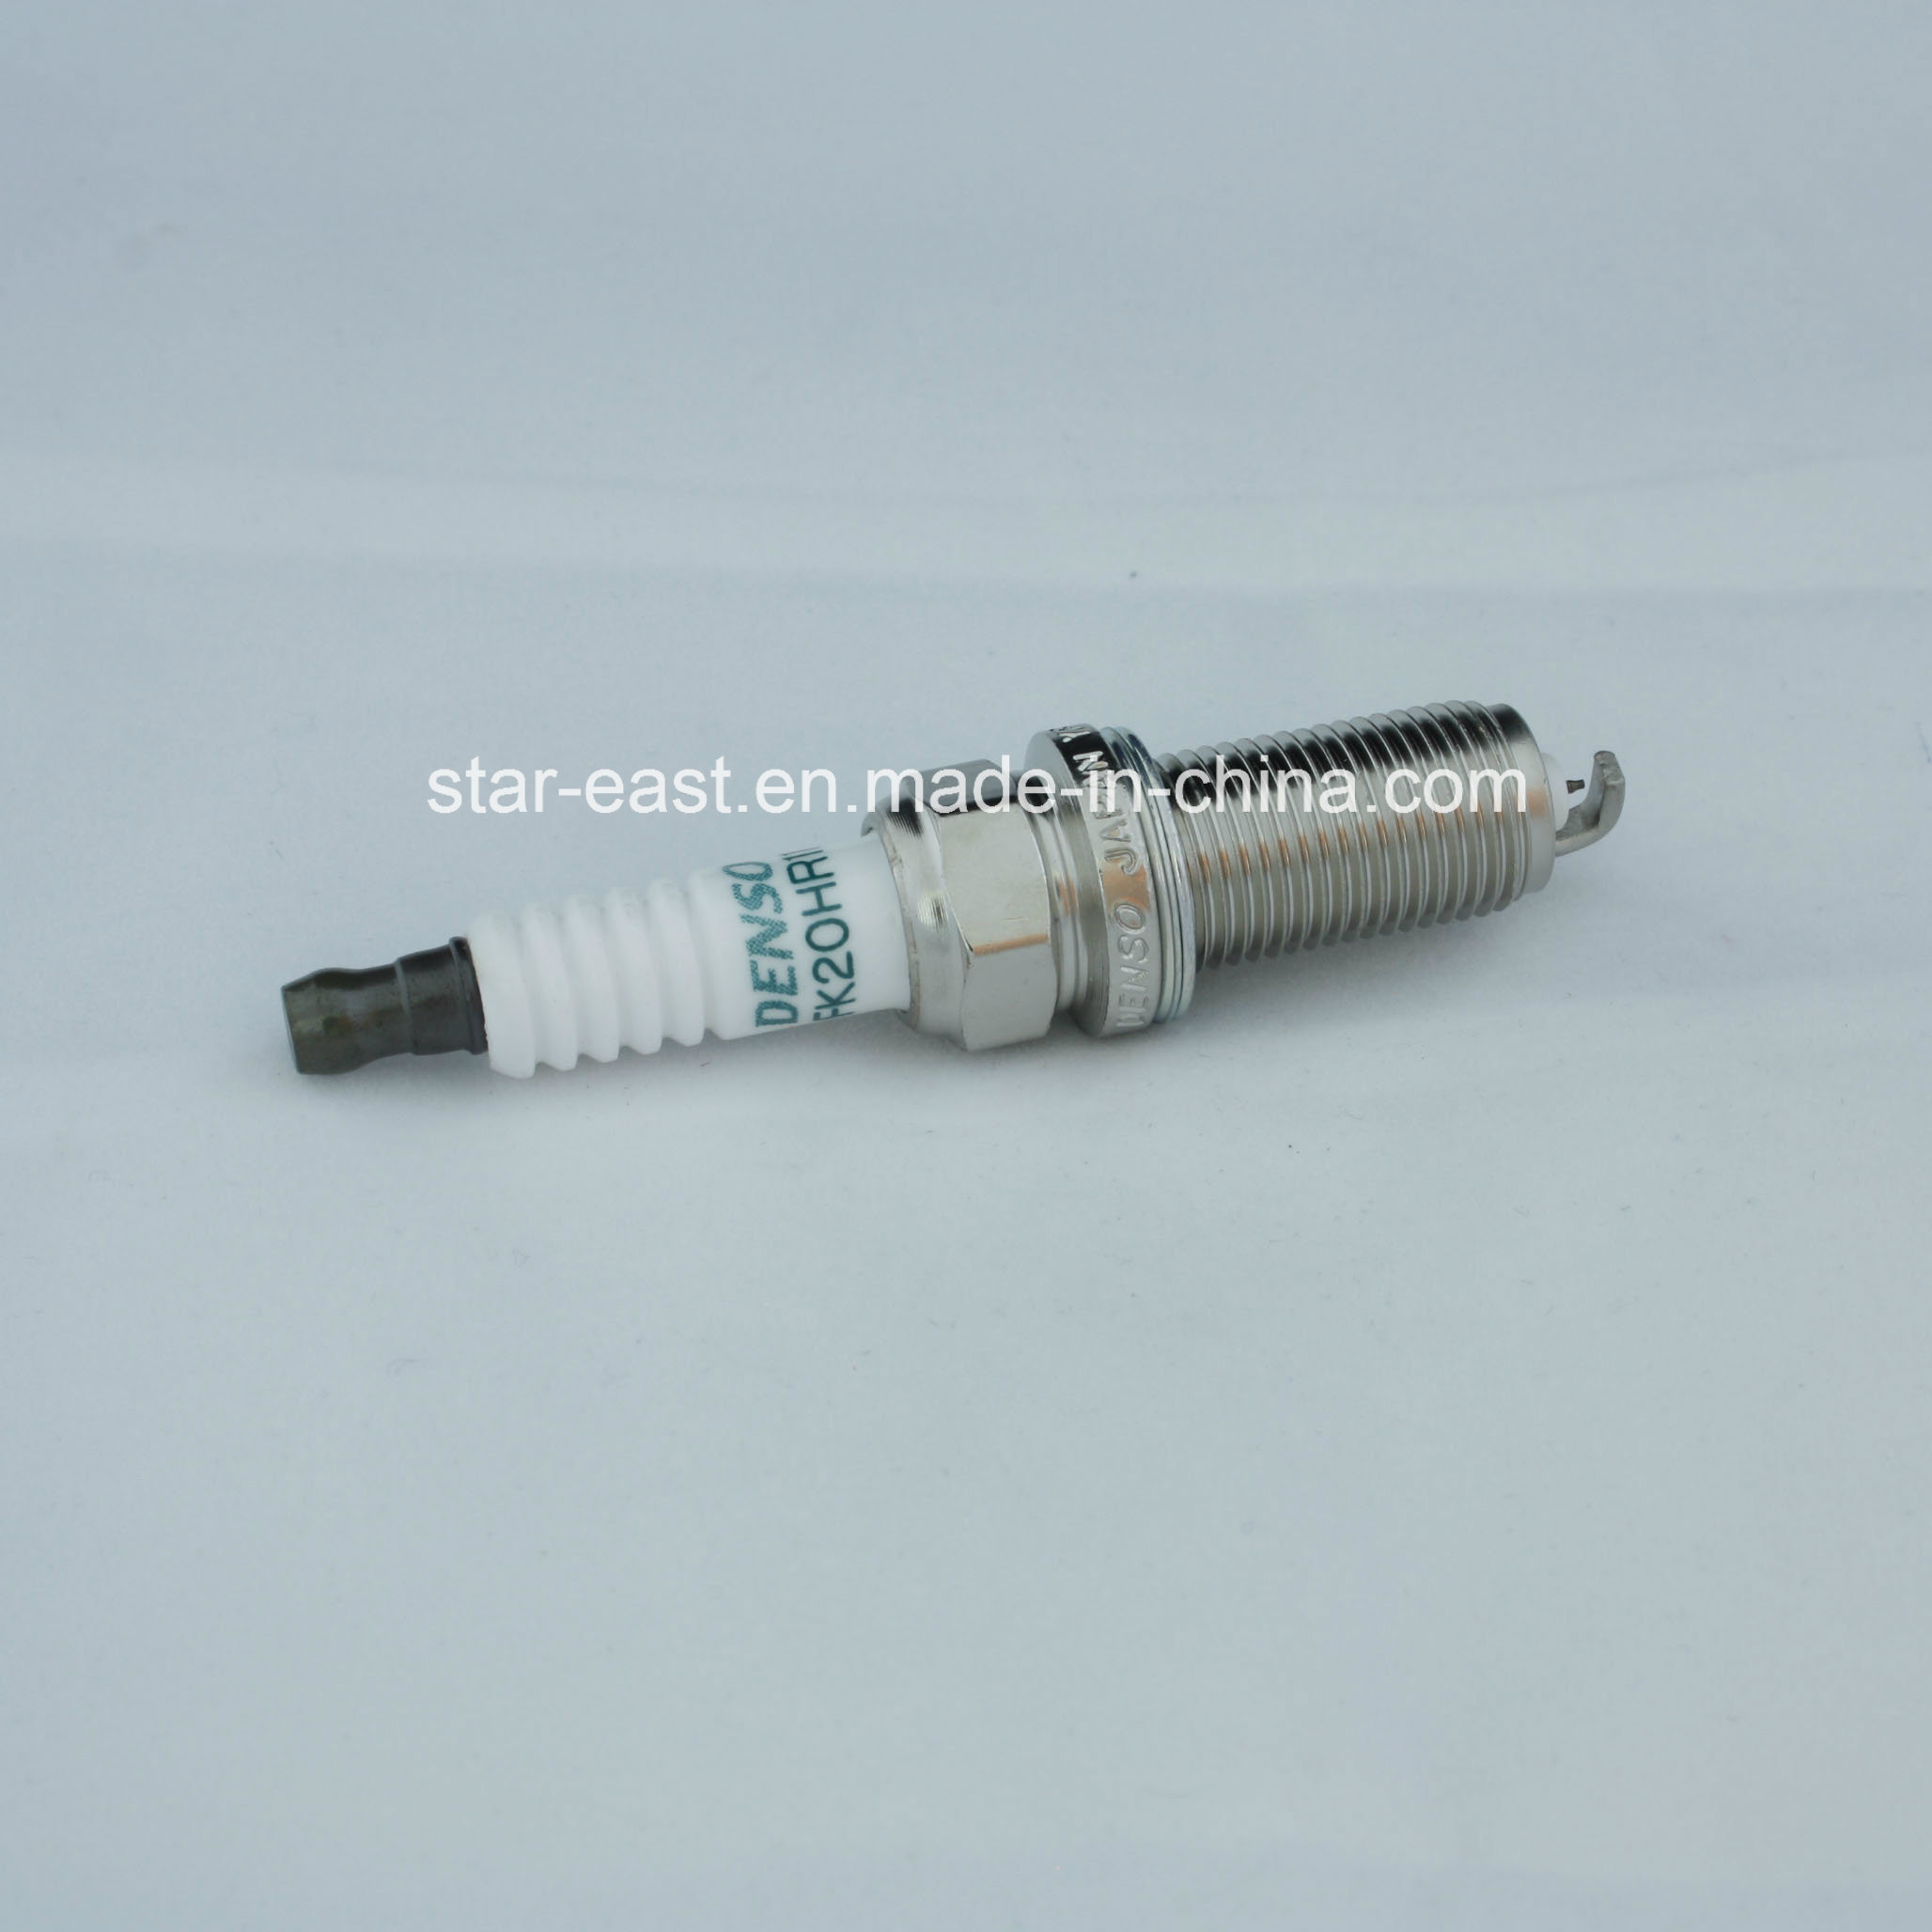 Denso Hight Quality Spark Plug for Fk20hr11 Toyota 90919 01247